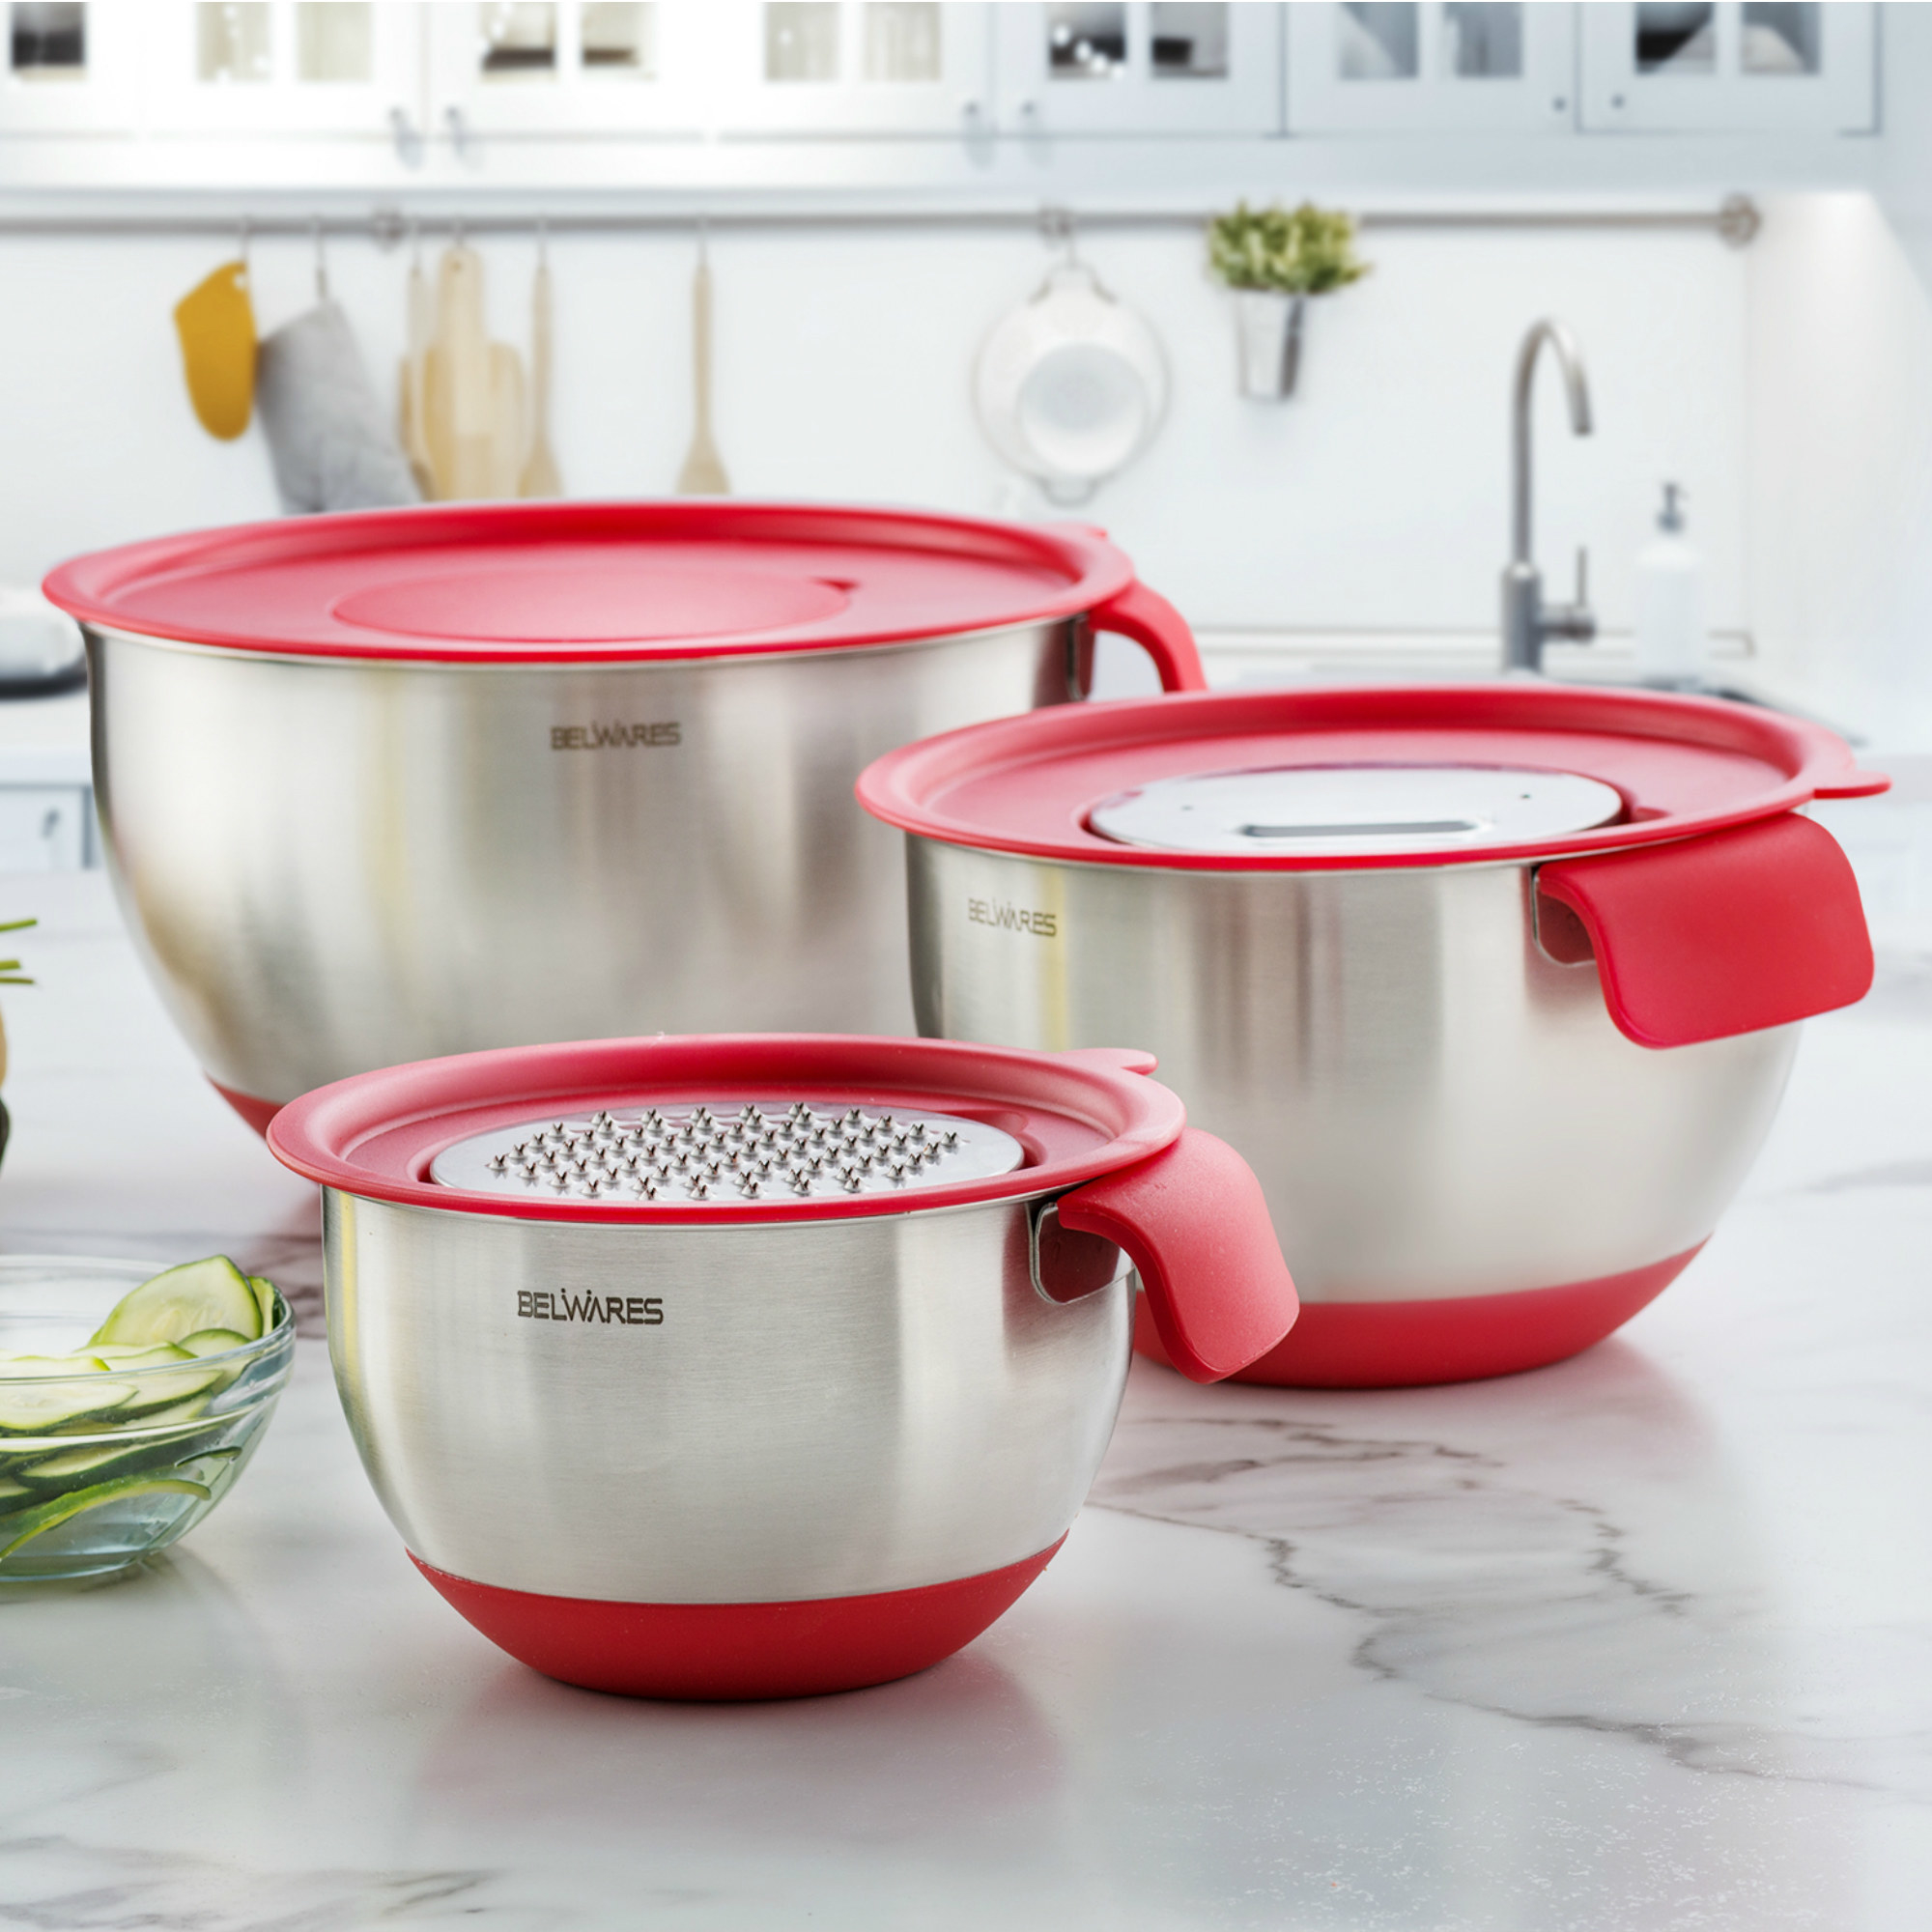 Set of three stainless steel bowls with red tops, including lid inserts for graters and slicers